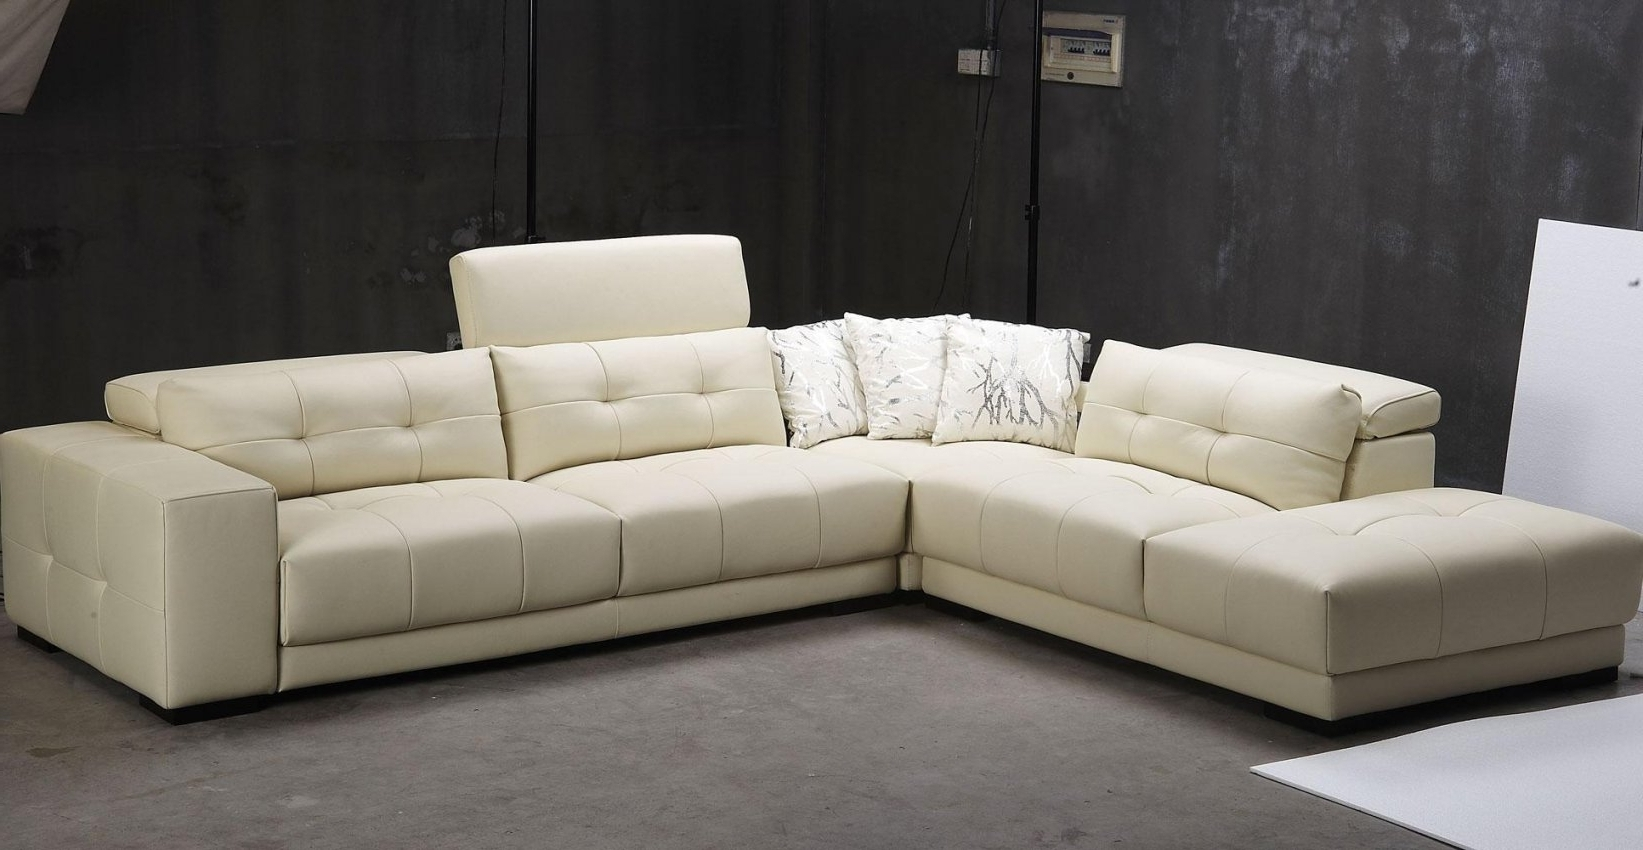 3 Piece Sectional Sleeper Sofas For Fashionable Sofa : Best Modern 3 Piece White Leather Sectional Sleeper Sofa (View 5 of 20)